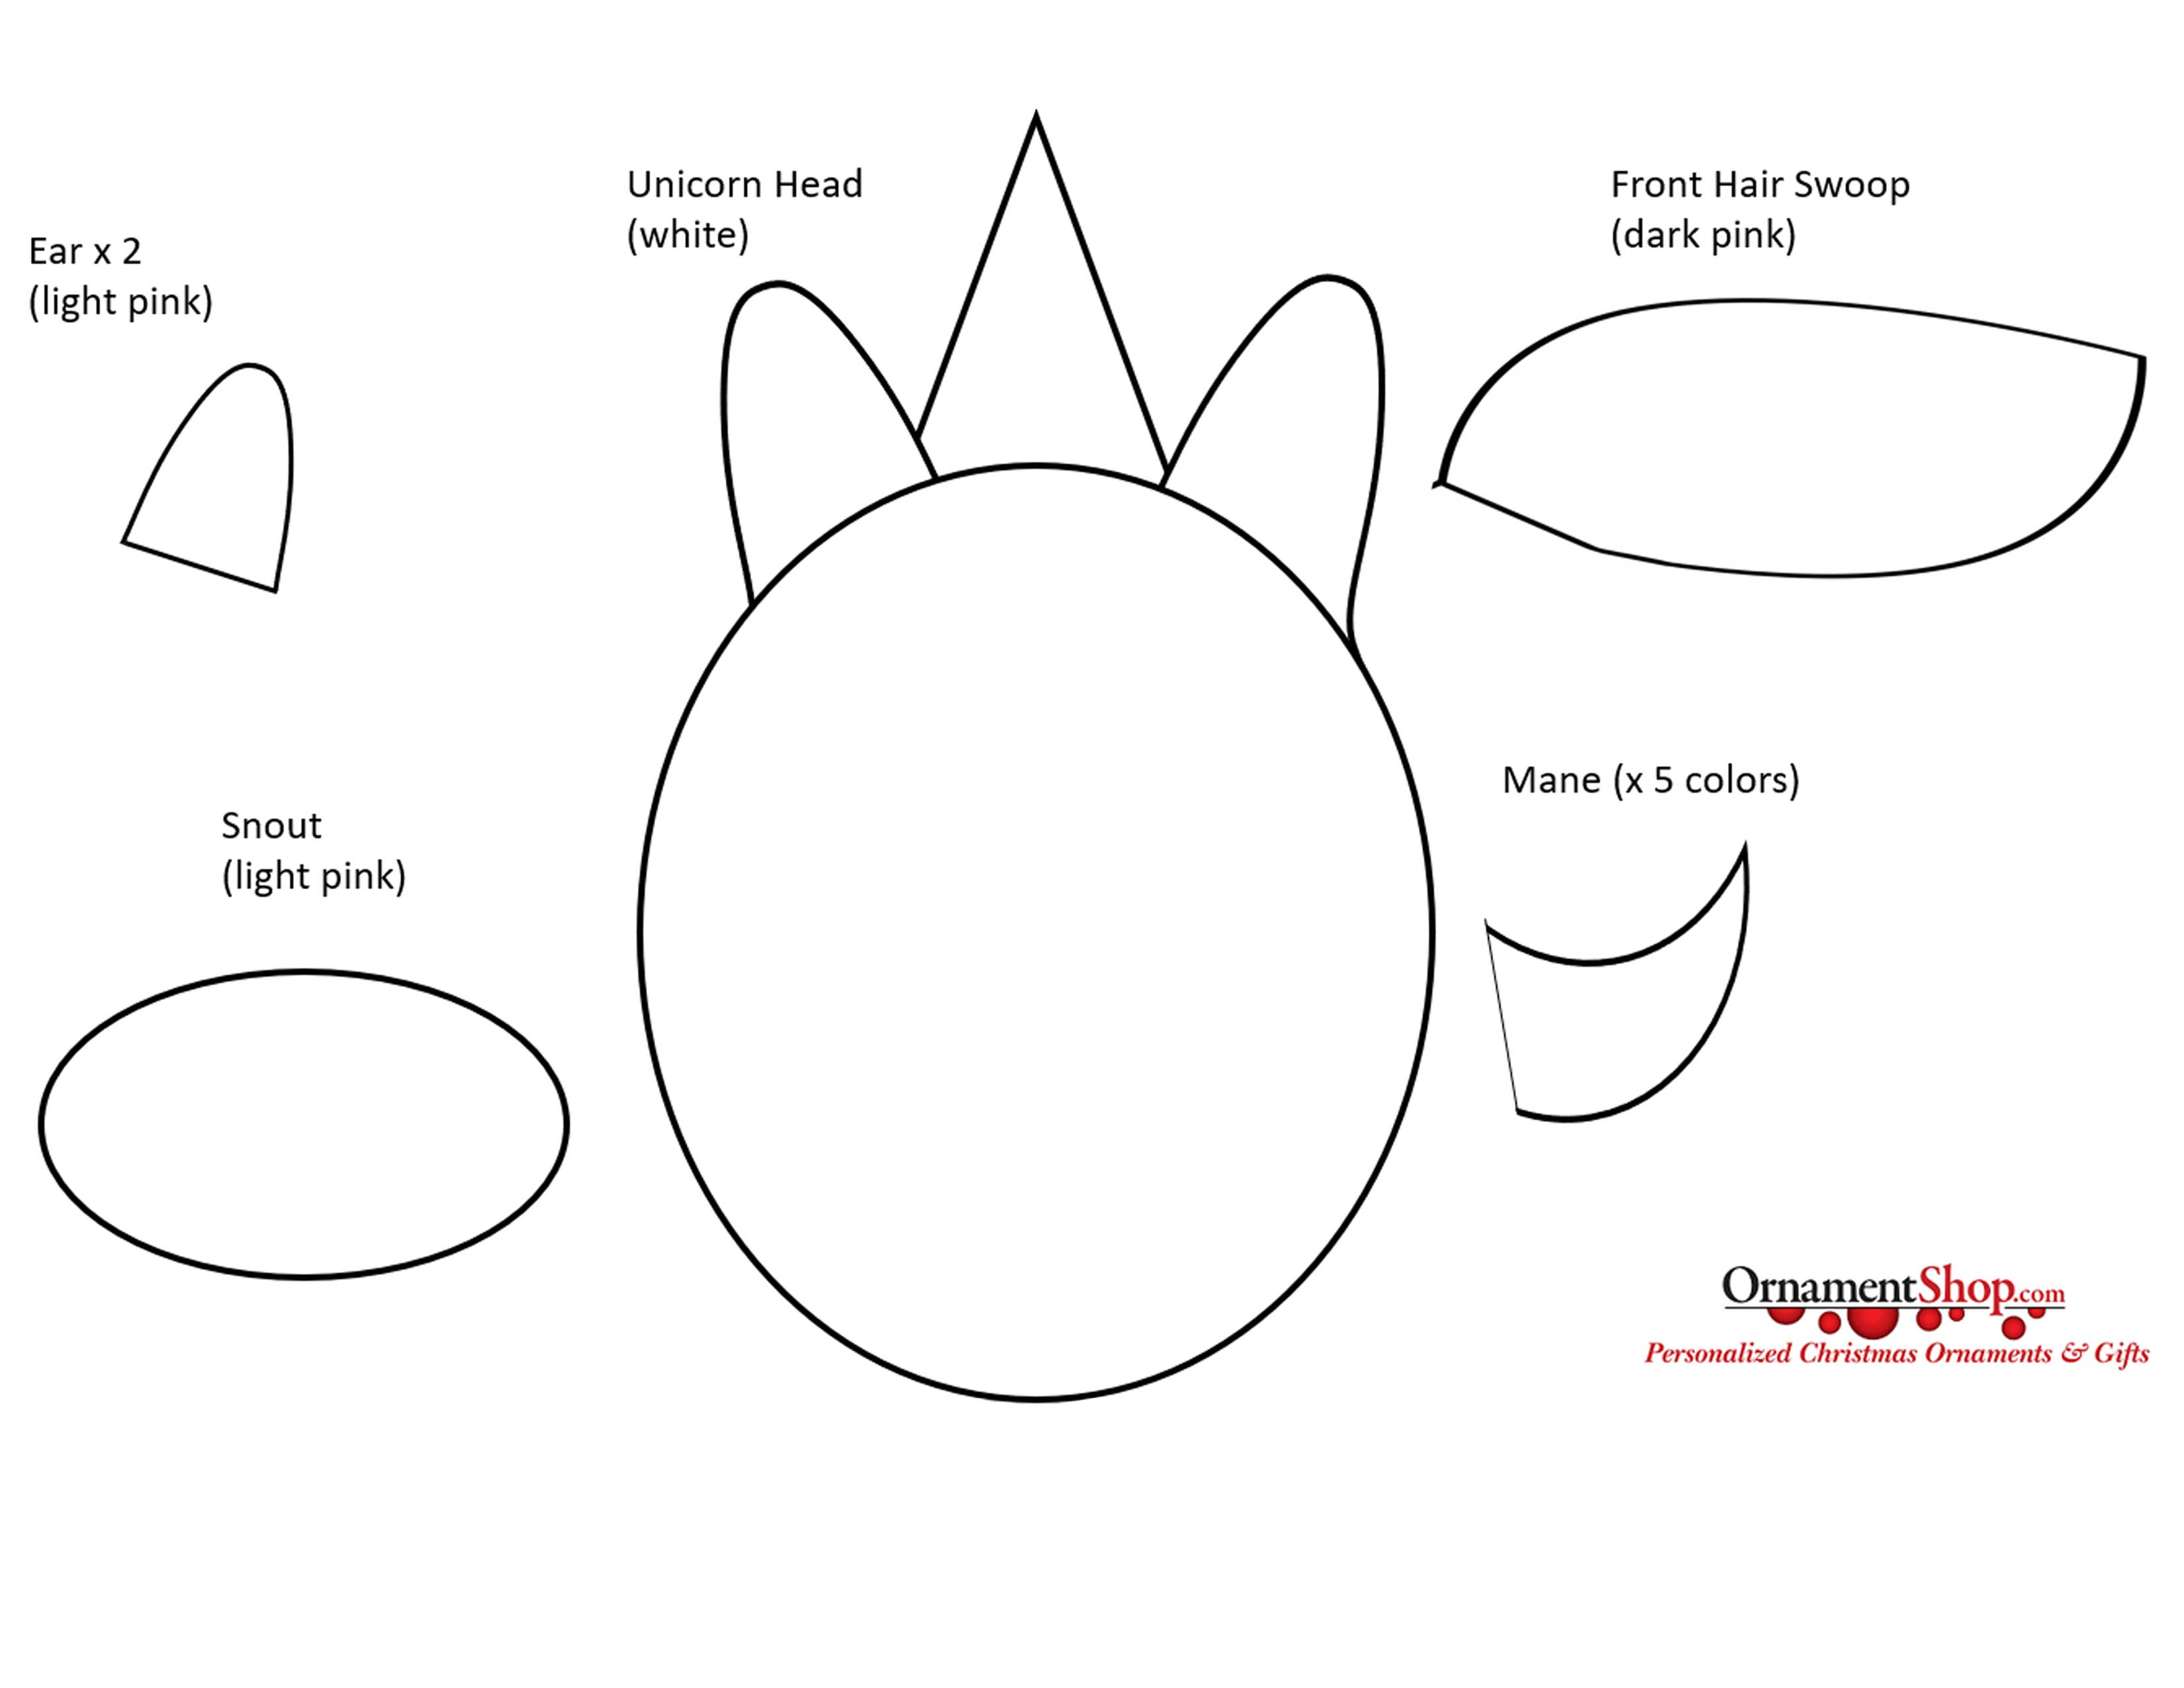 Unicorn ornament template - cut out these shapes | Ornament Shop